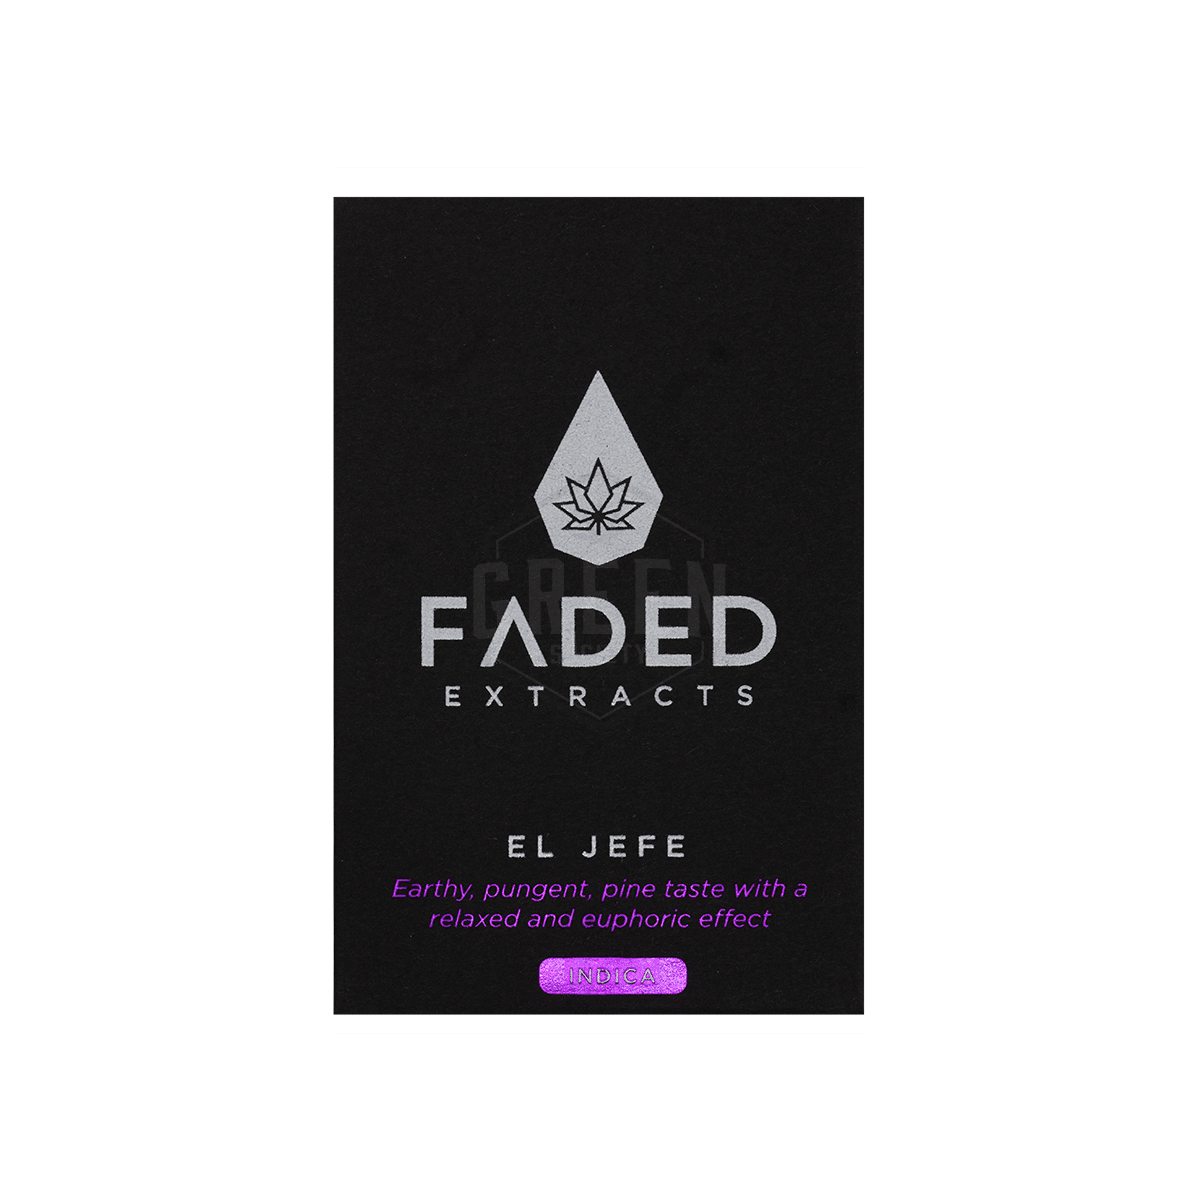 El Jefe Shatter by Faded Extracts by Green Society - Image © 2018 Green Society. All Rights Reserved.